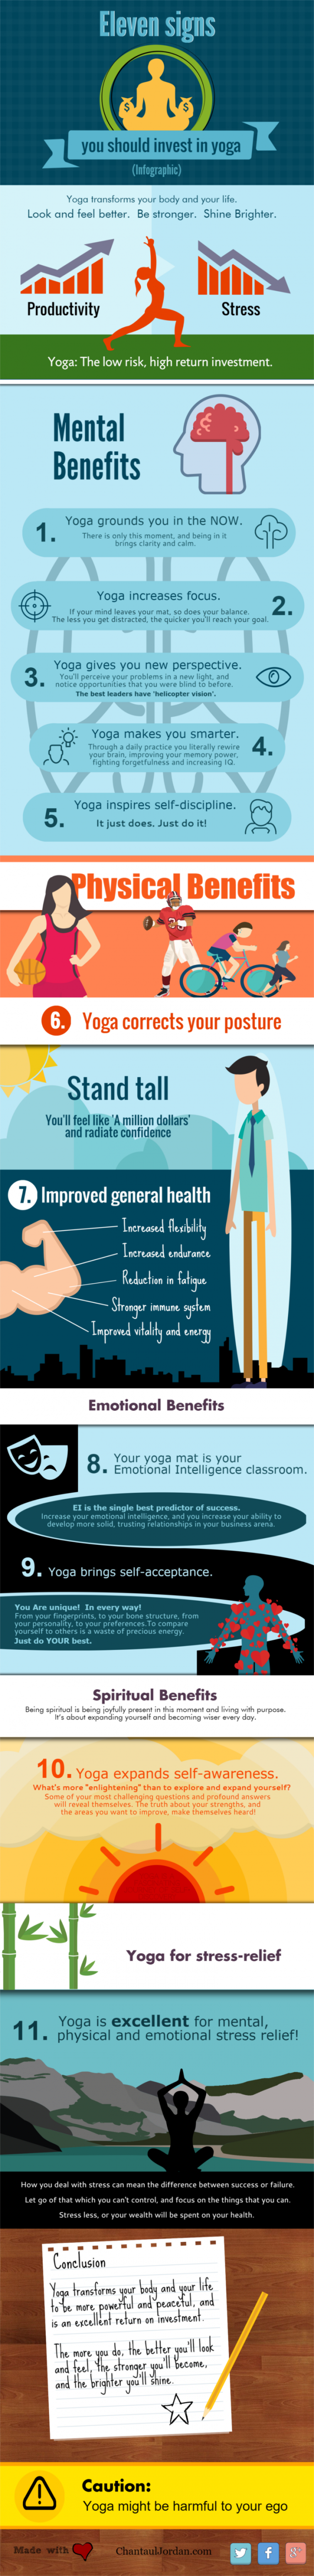 Eleven signs you should invest in yoga - Infographic